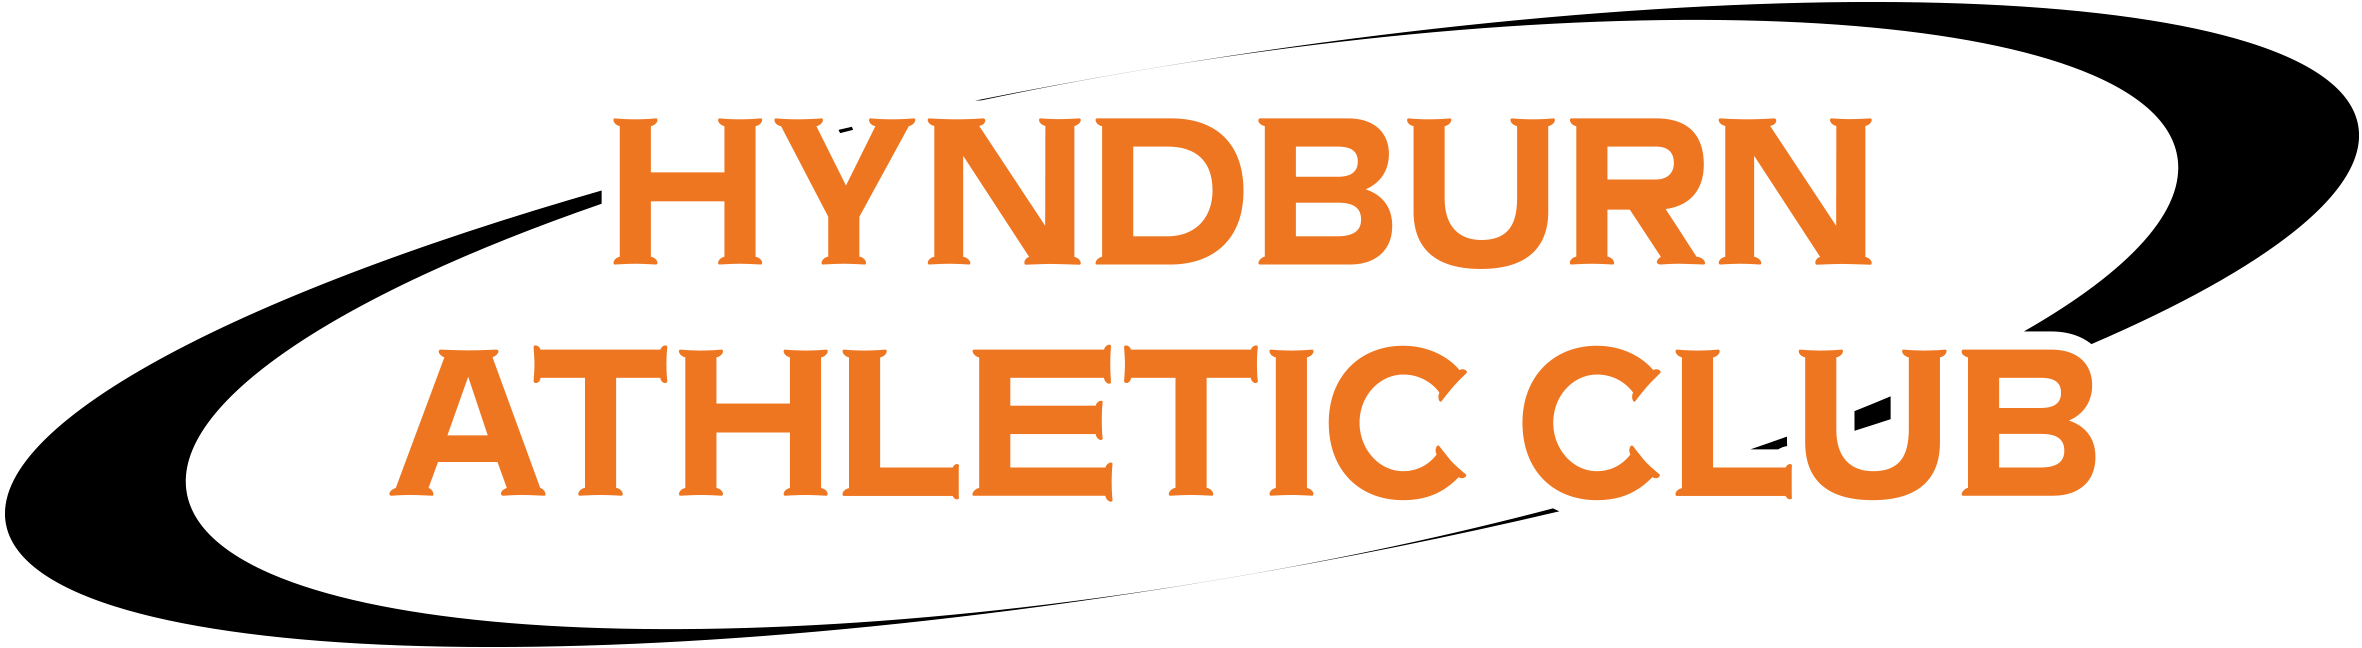 Hyndburn Athletic Club